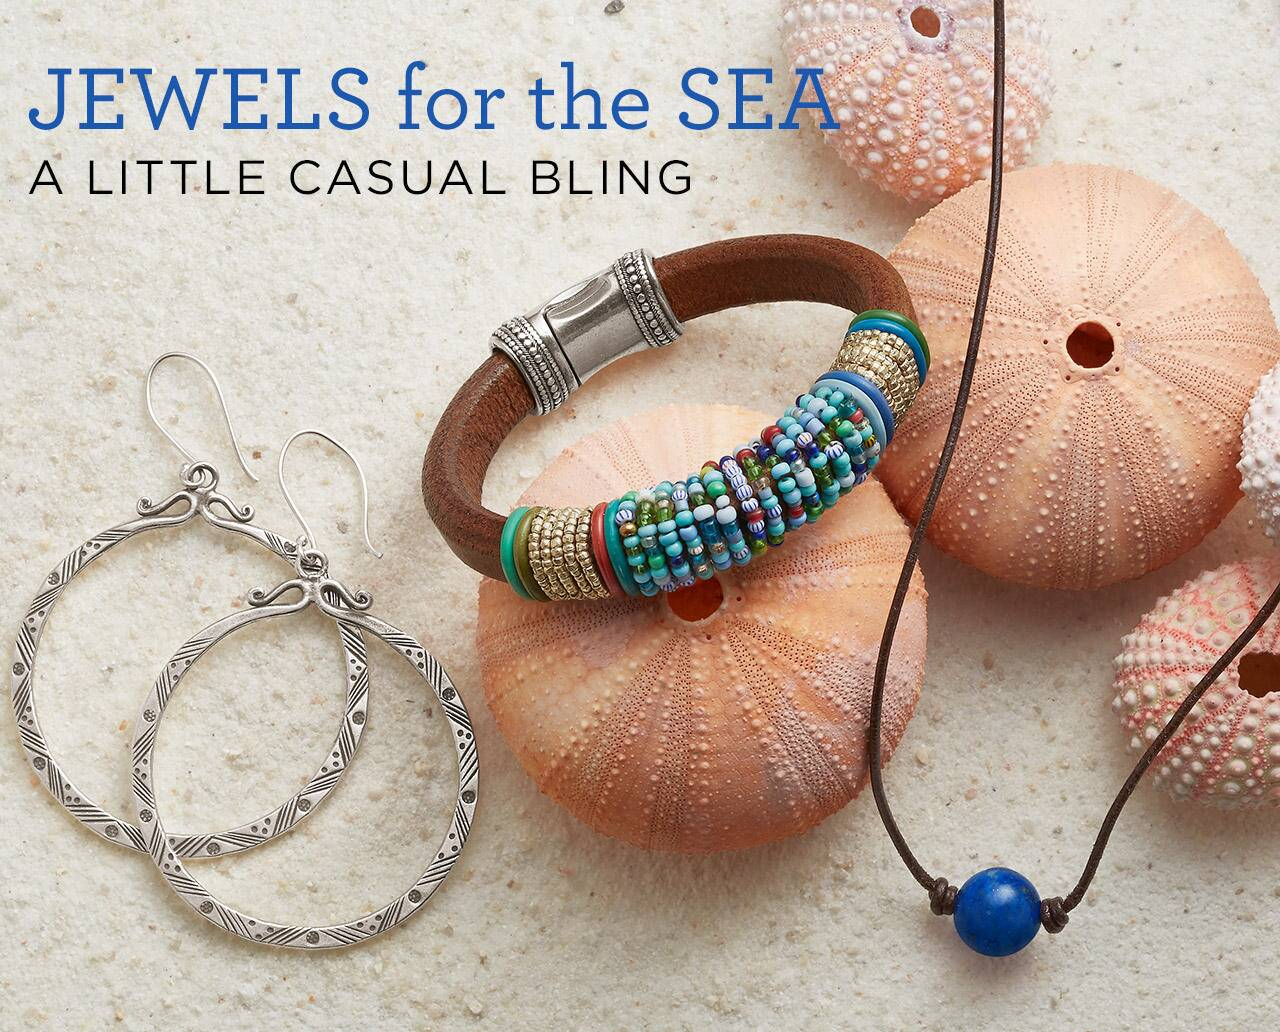 Jewels for the Sea